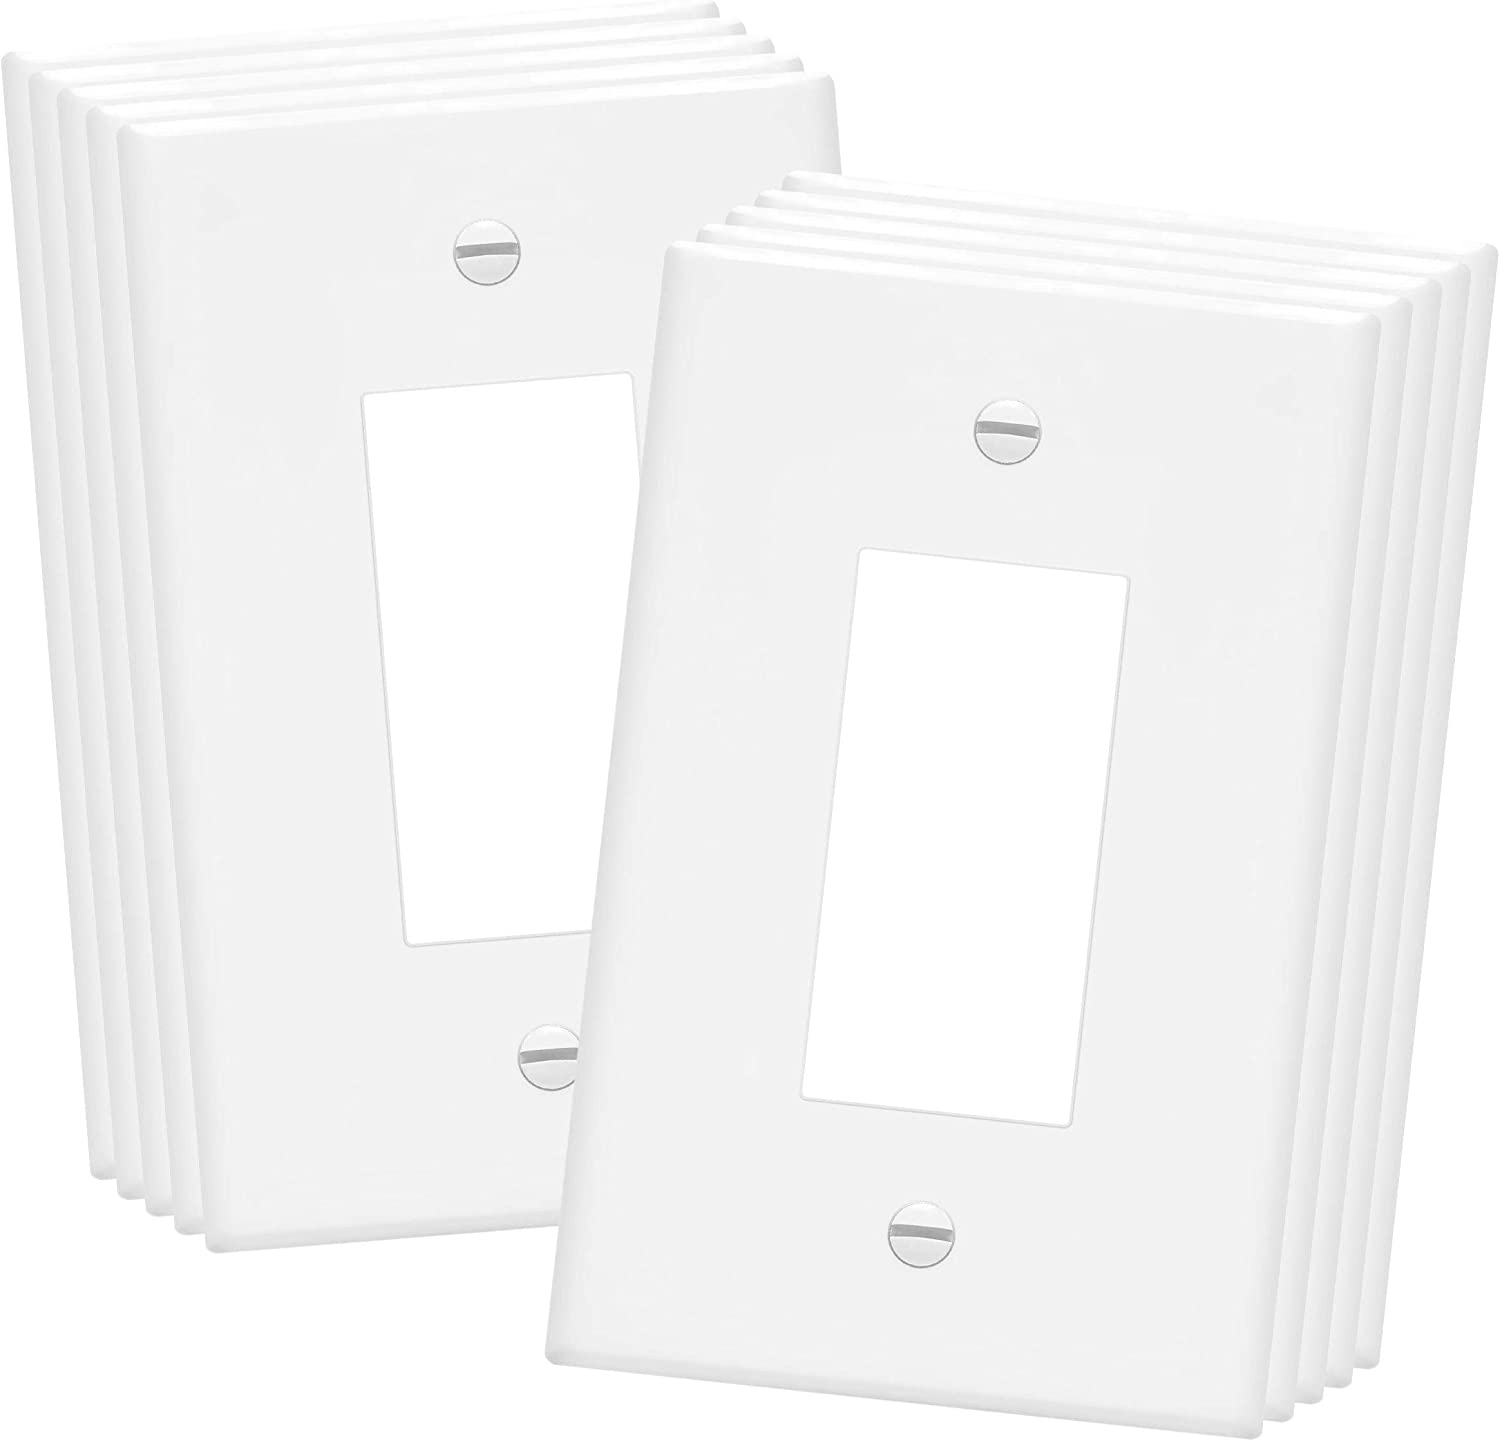 "ENERLITES Decorator Light Switch or Receptacle Outlet Wall Plate, Over-Size 1-Gang 5.5"" x 3.5"", Unbreakable Polycarbonate Thermoplastic, UL Listed, 8831O-W-10PCS, White (10 Pack)"